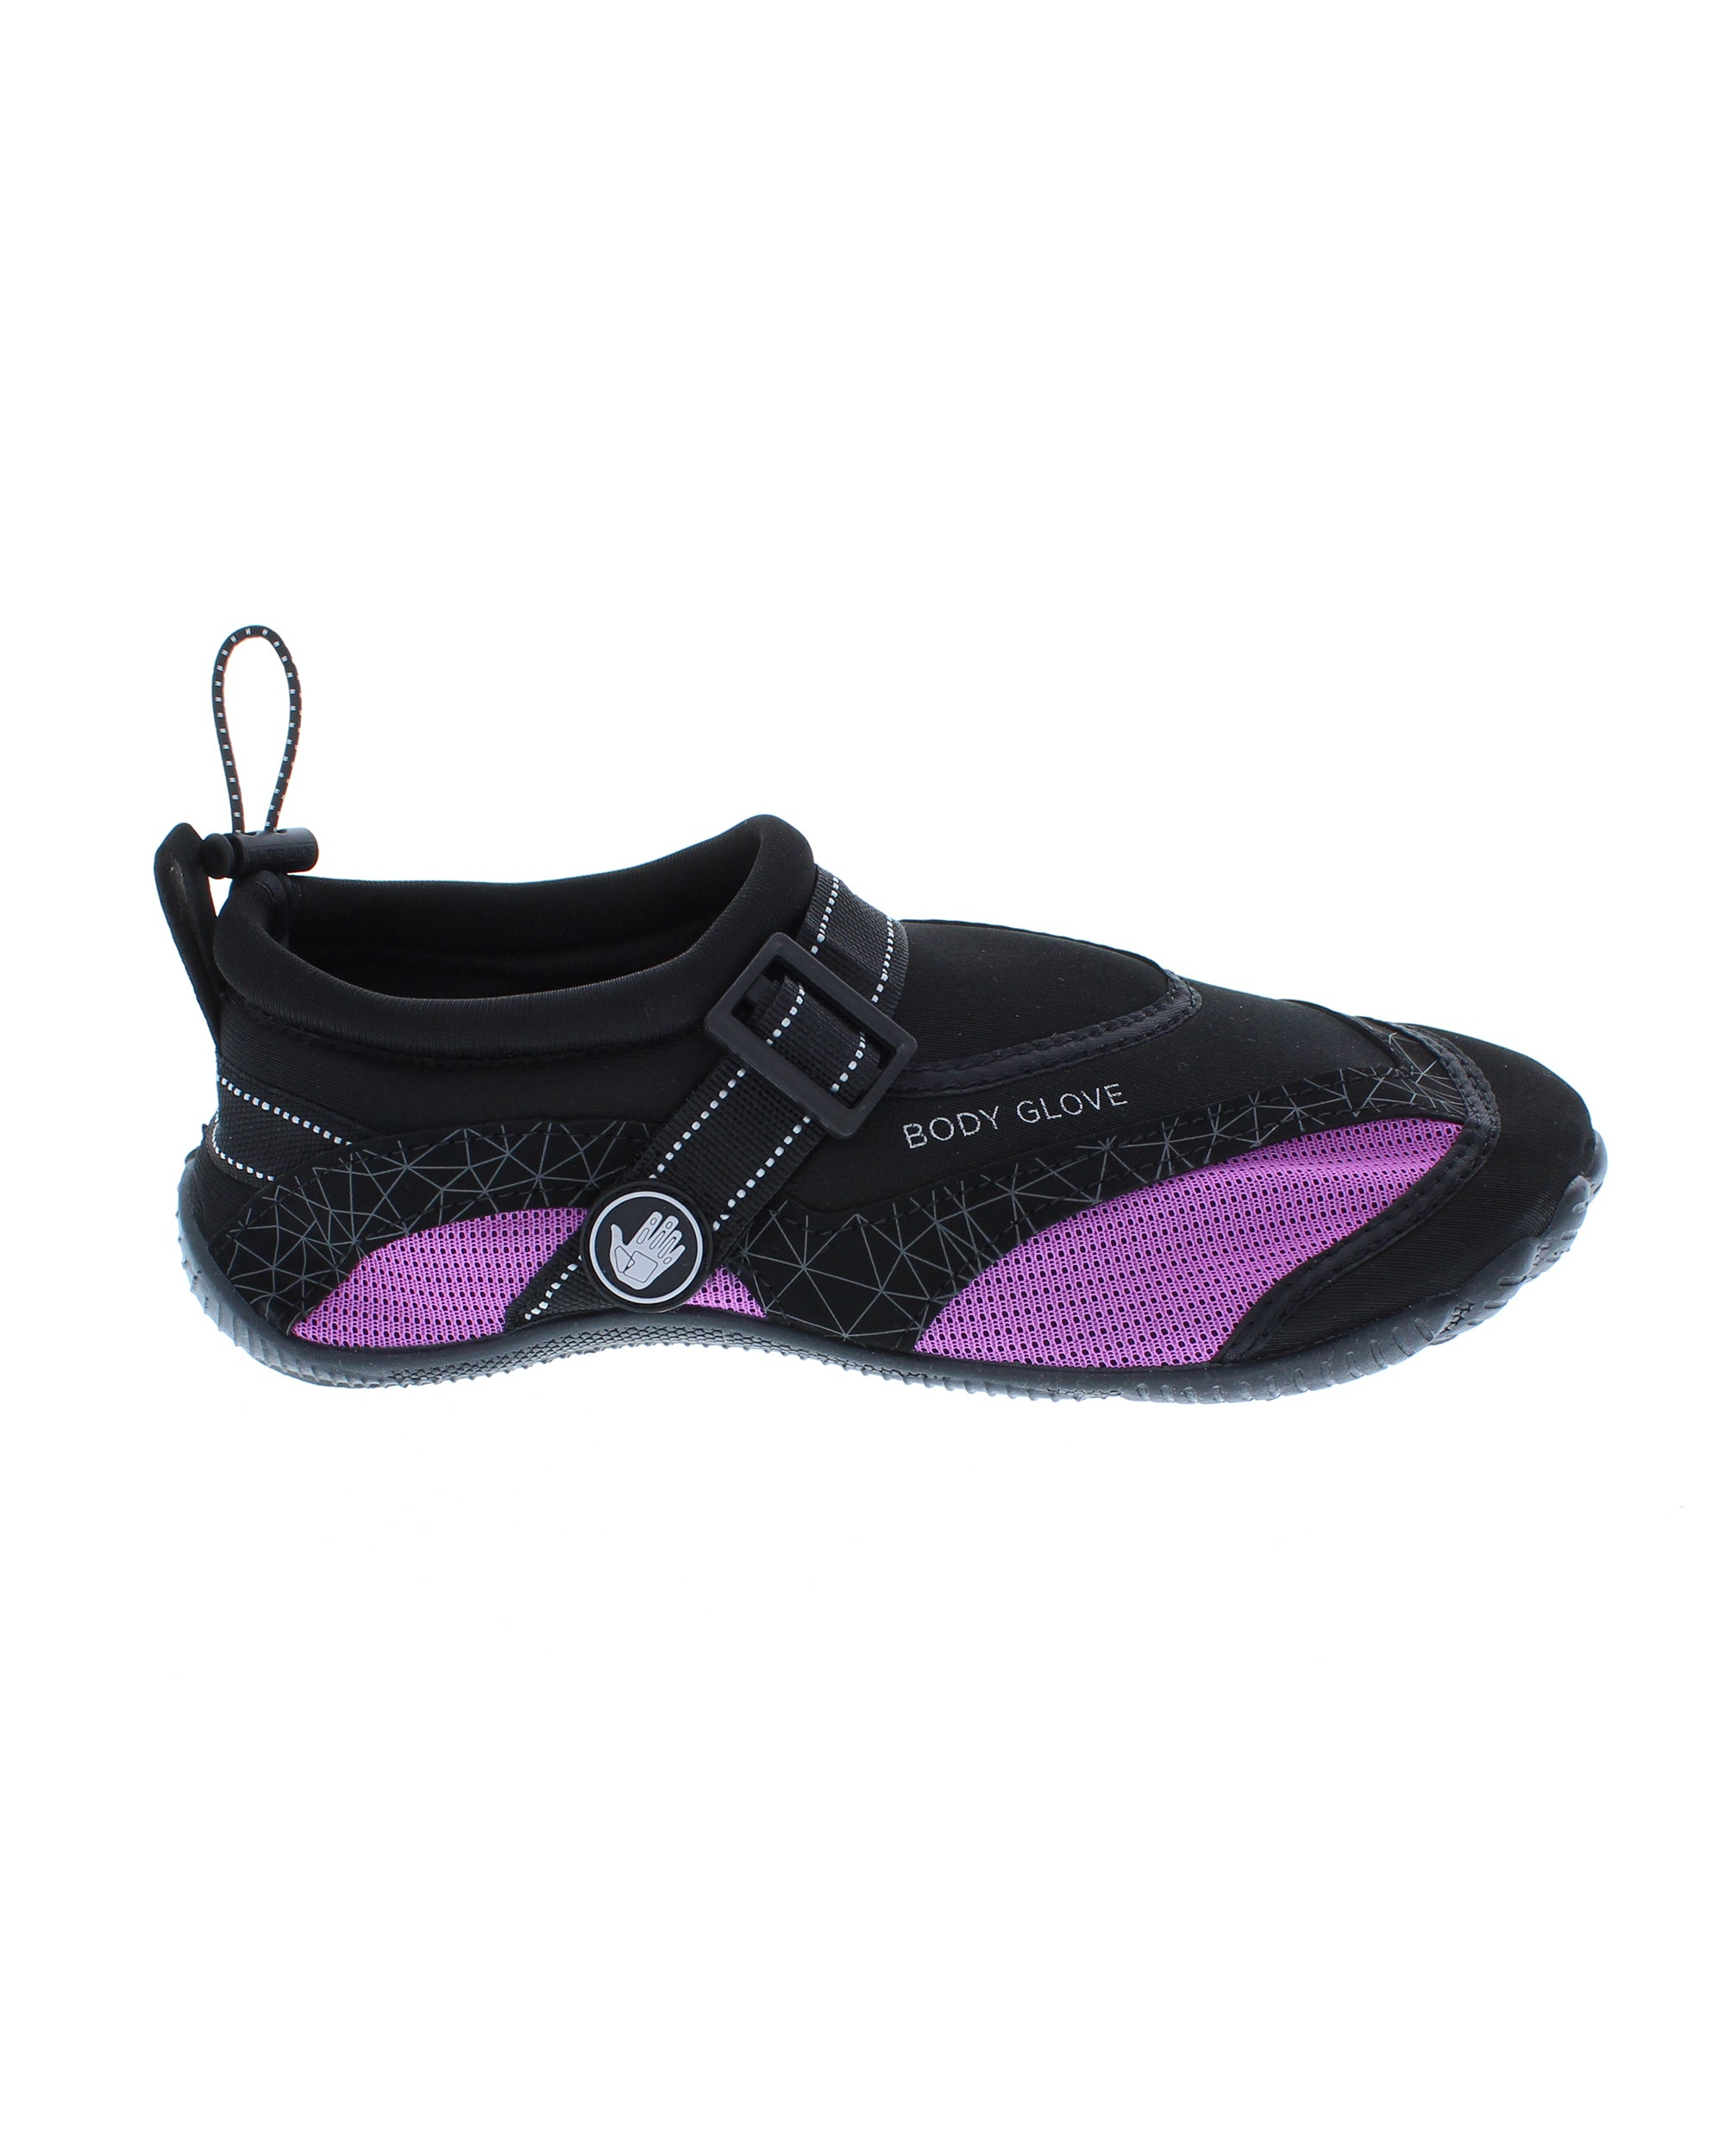 Women's Realm Water Shoes - Black/Oasis Purple